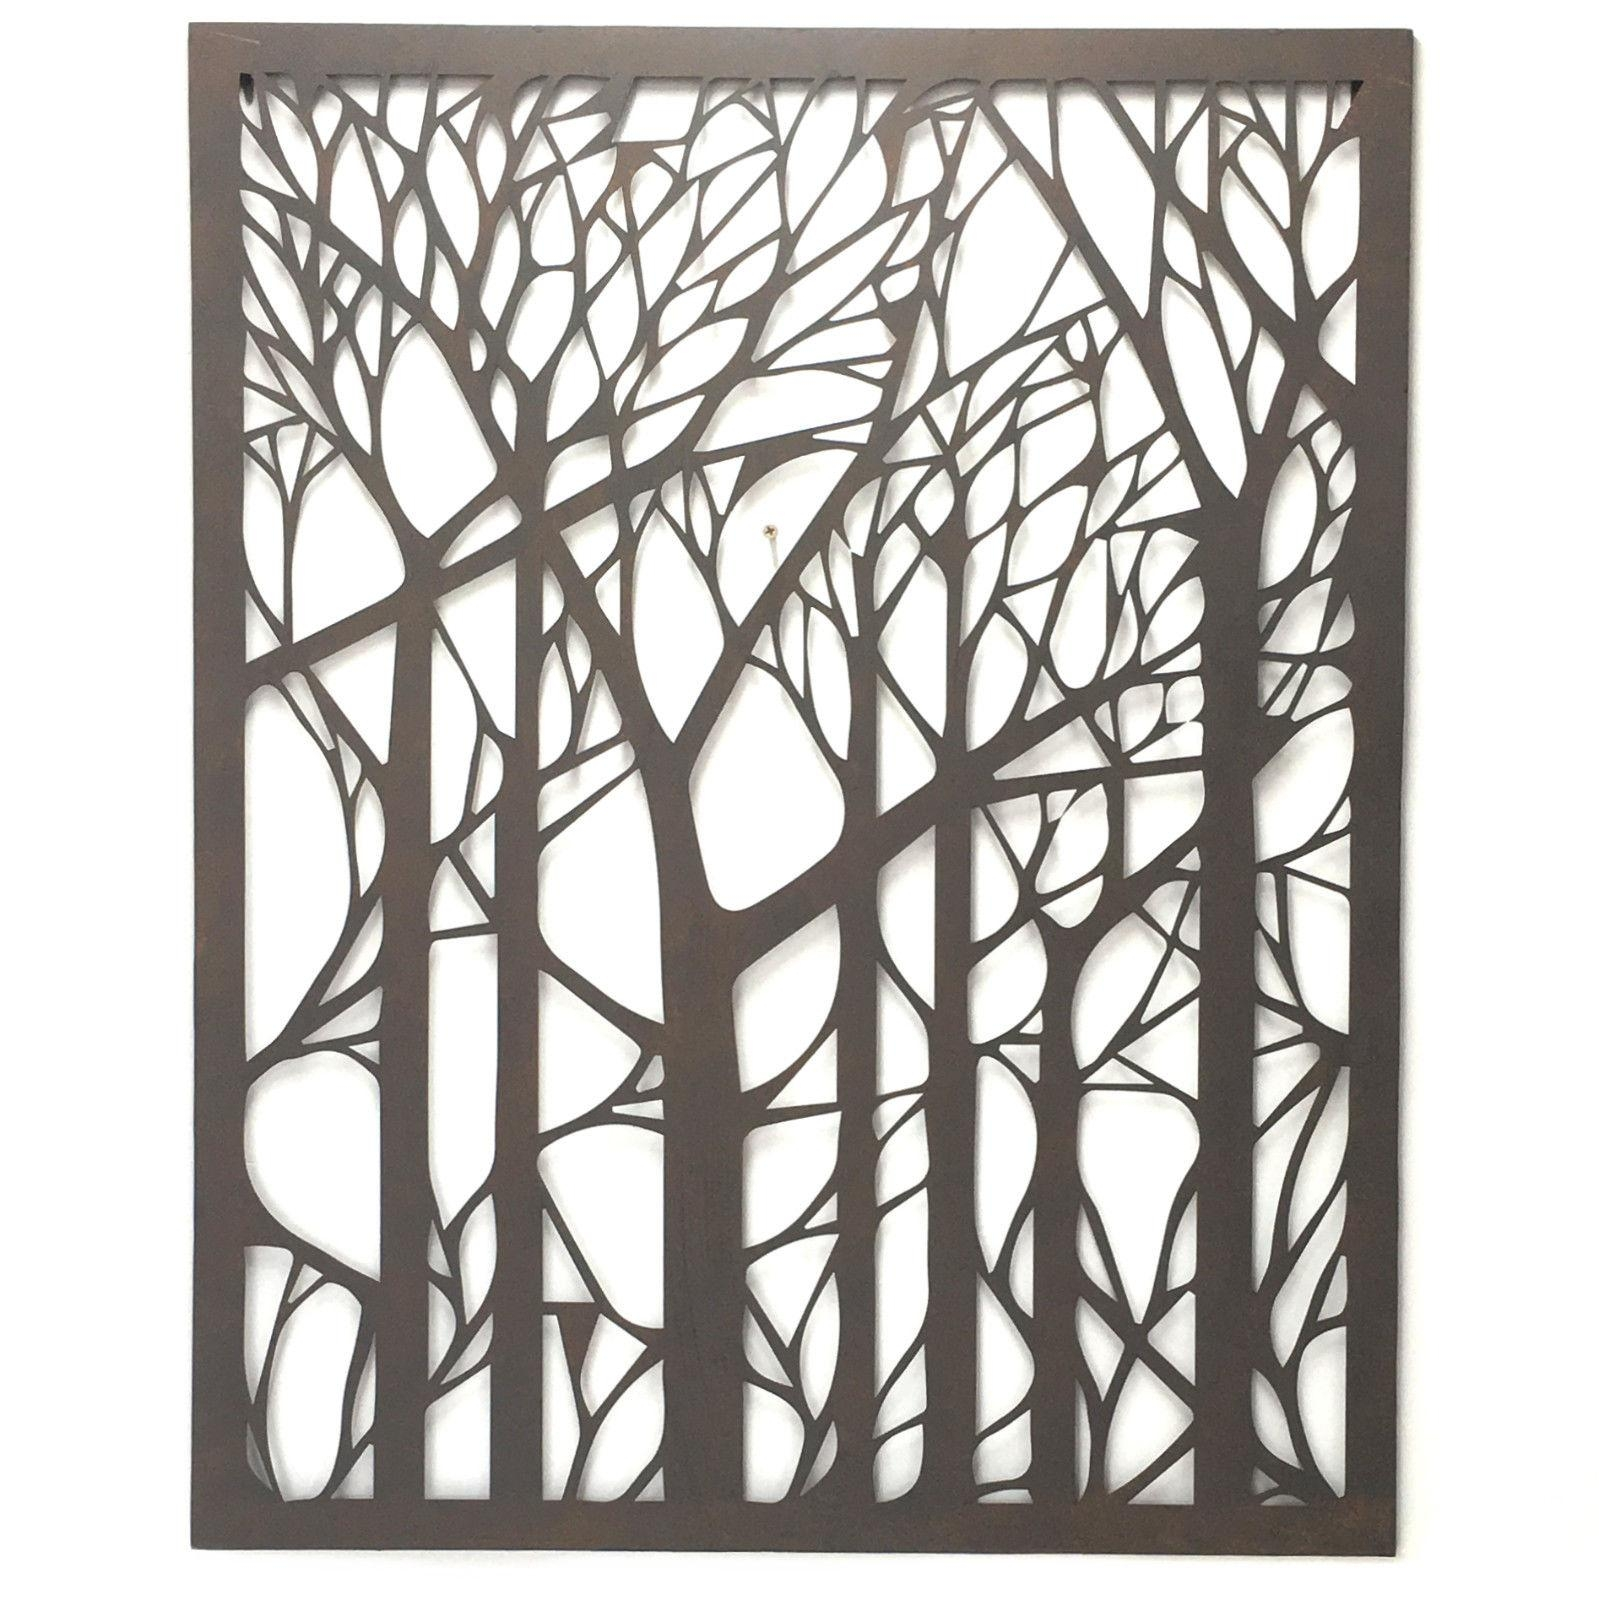 Wall Art Designs: Outdoor Wall Art Metal Tree Metal Wall Art With Regard To Wrought Iron Garden Wall Art (Image 12 of 20)